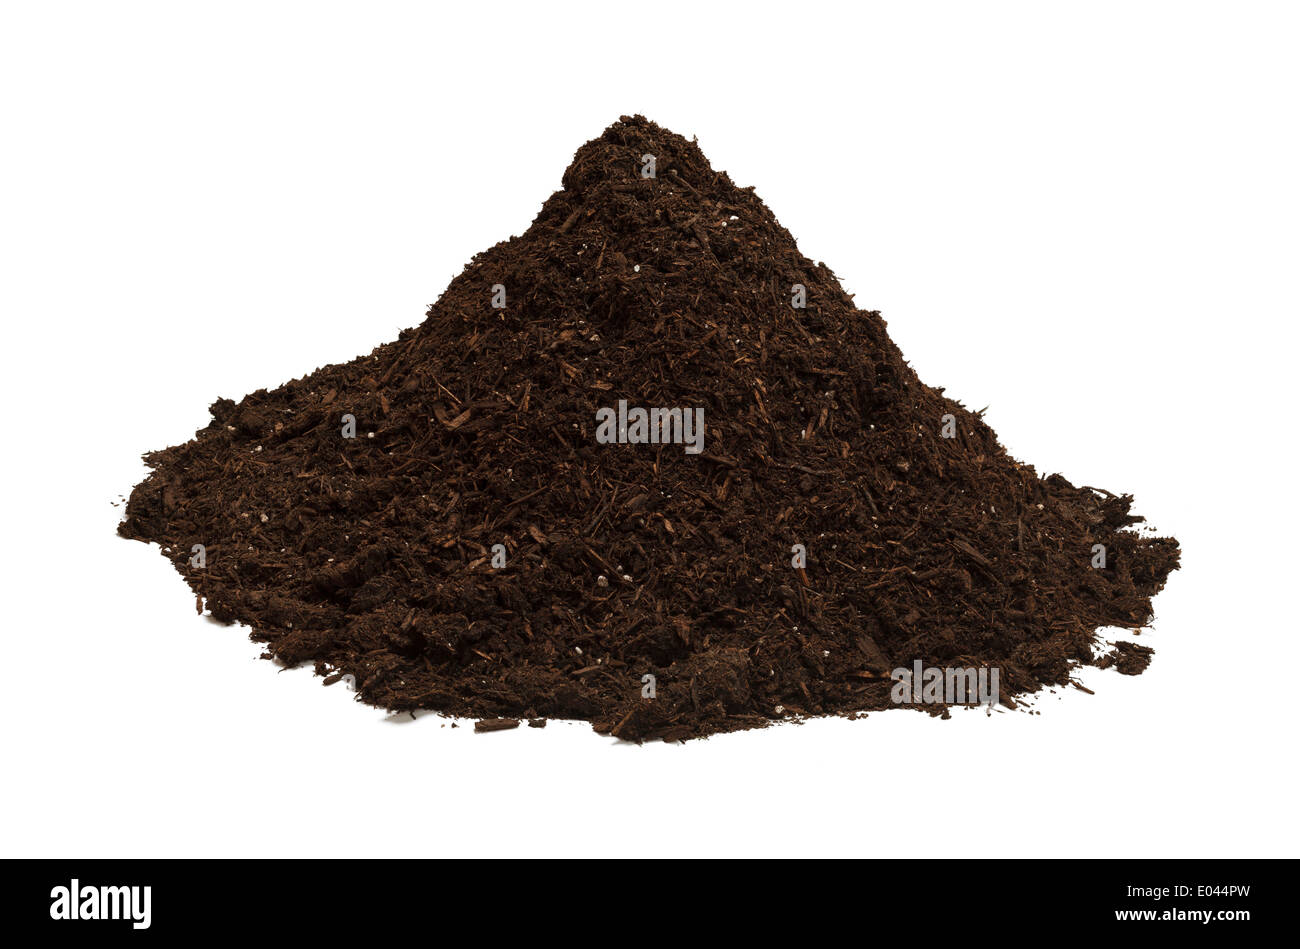 Brown Soil in a Dirt Mound Isolated on White Background. - Stock Image